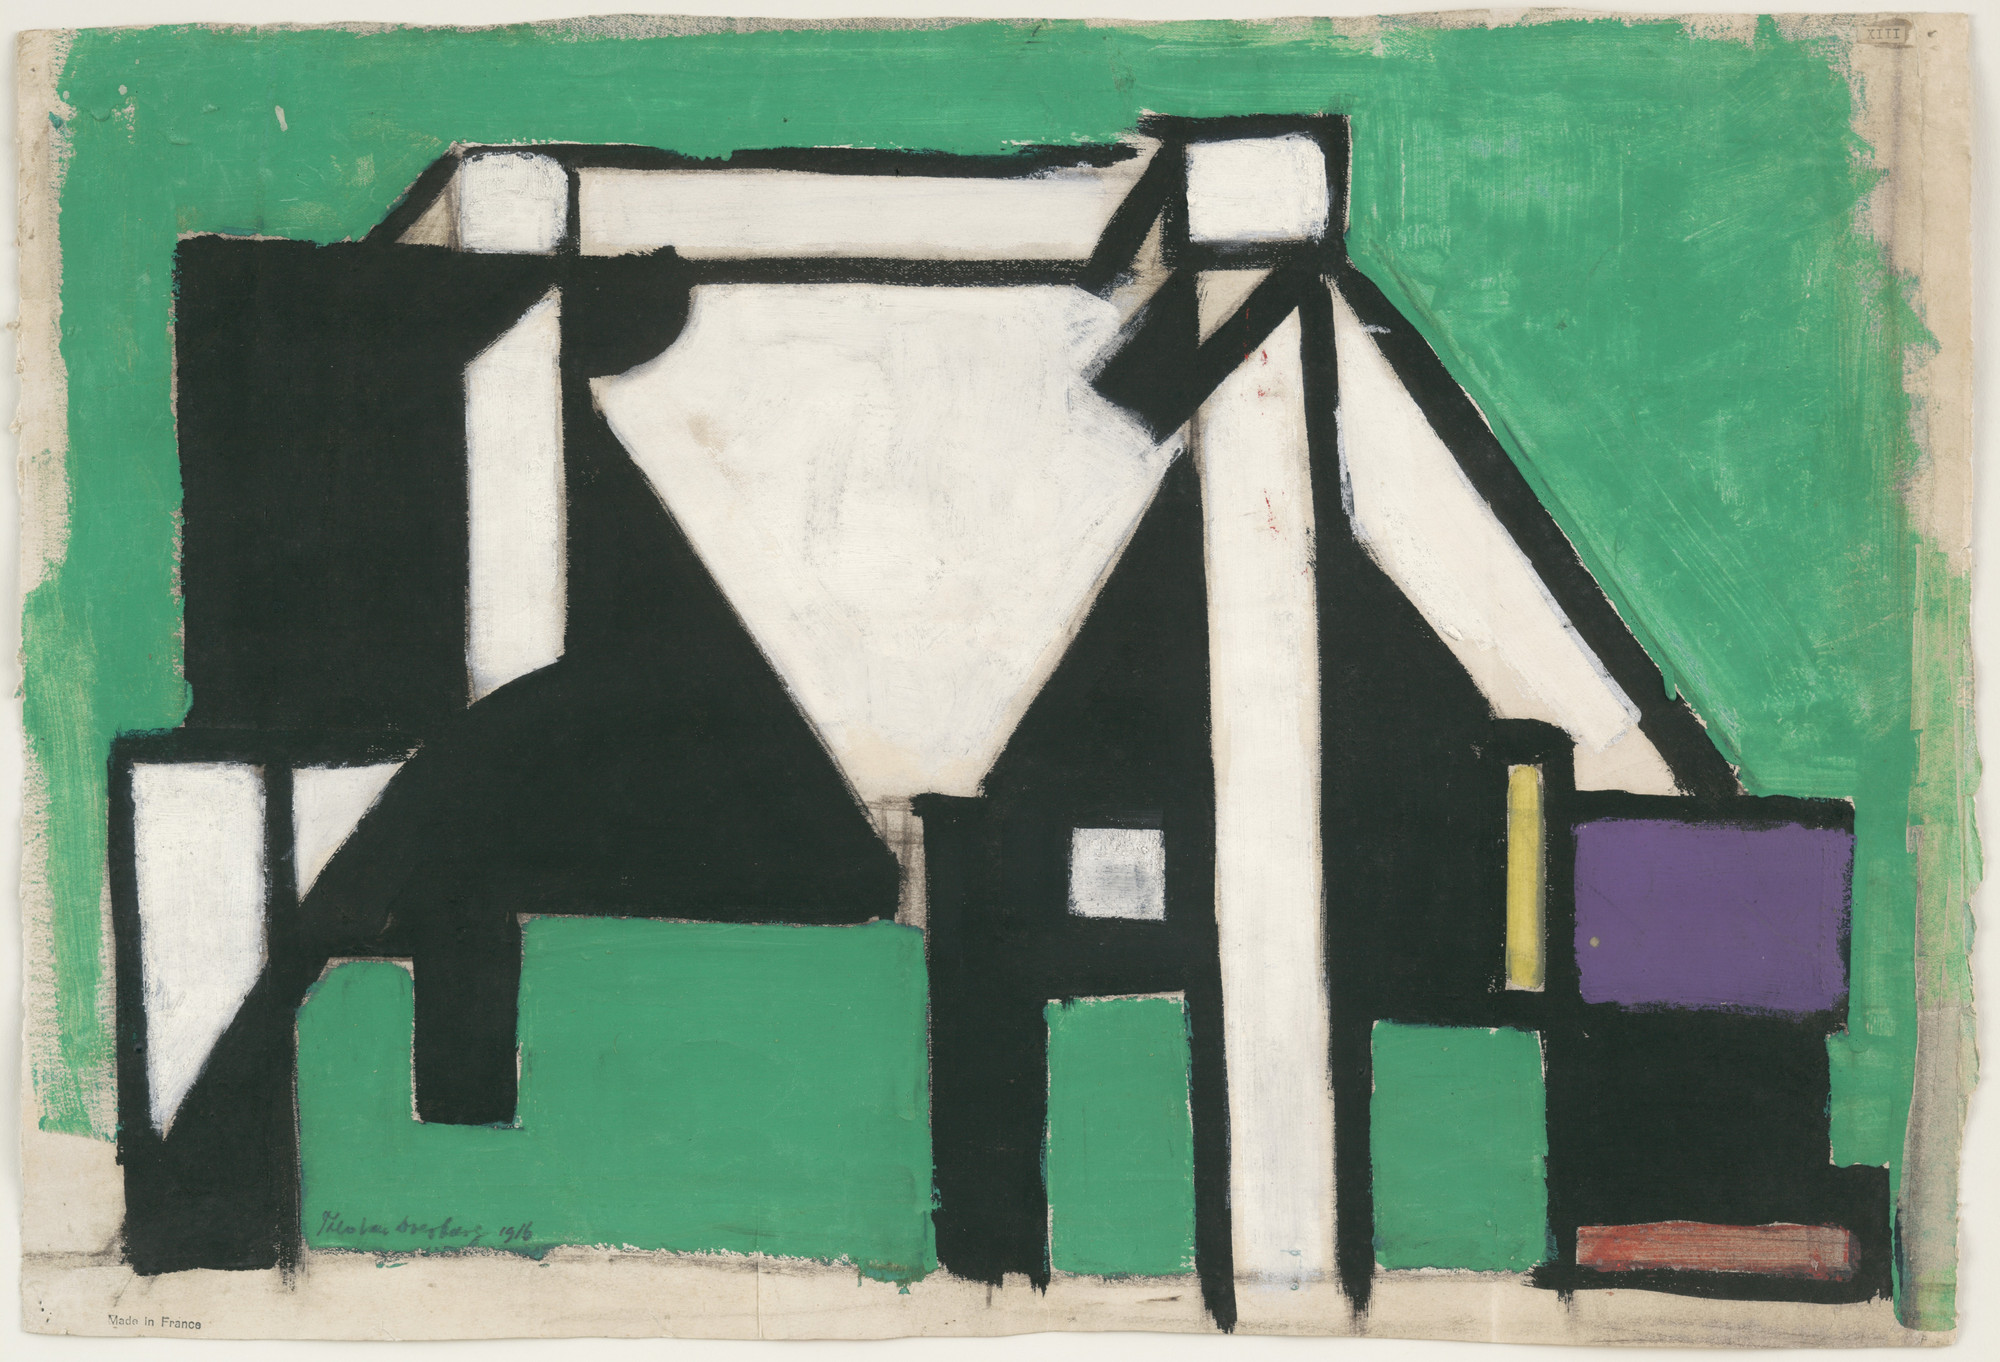 Theo van Doesburg (Christian Emil Marie Küpper). Composition (The Cow). c. 1917